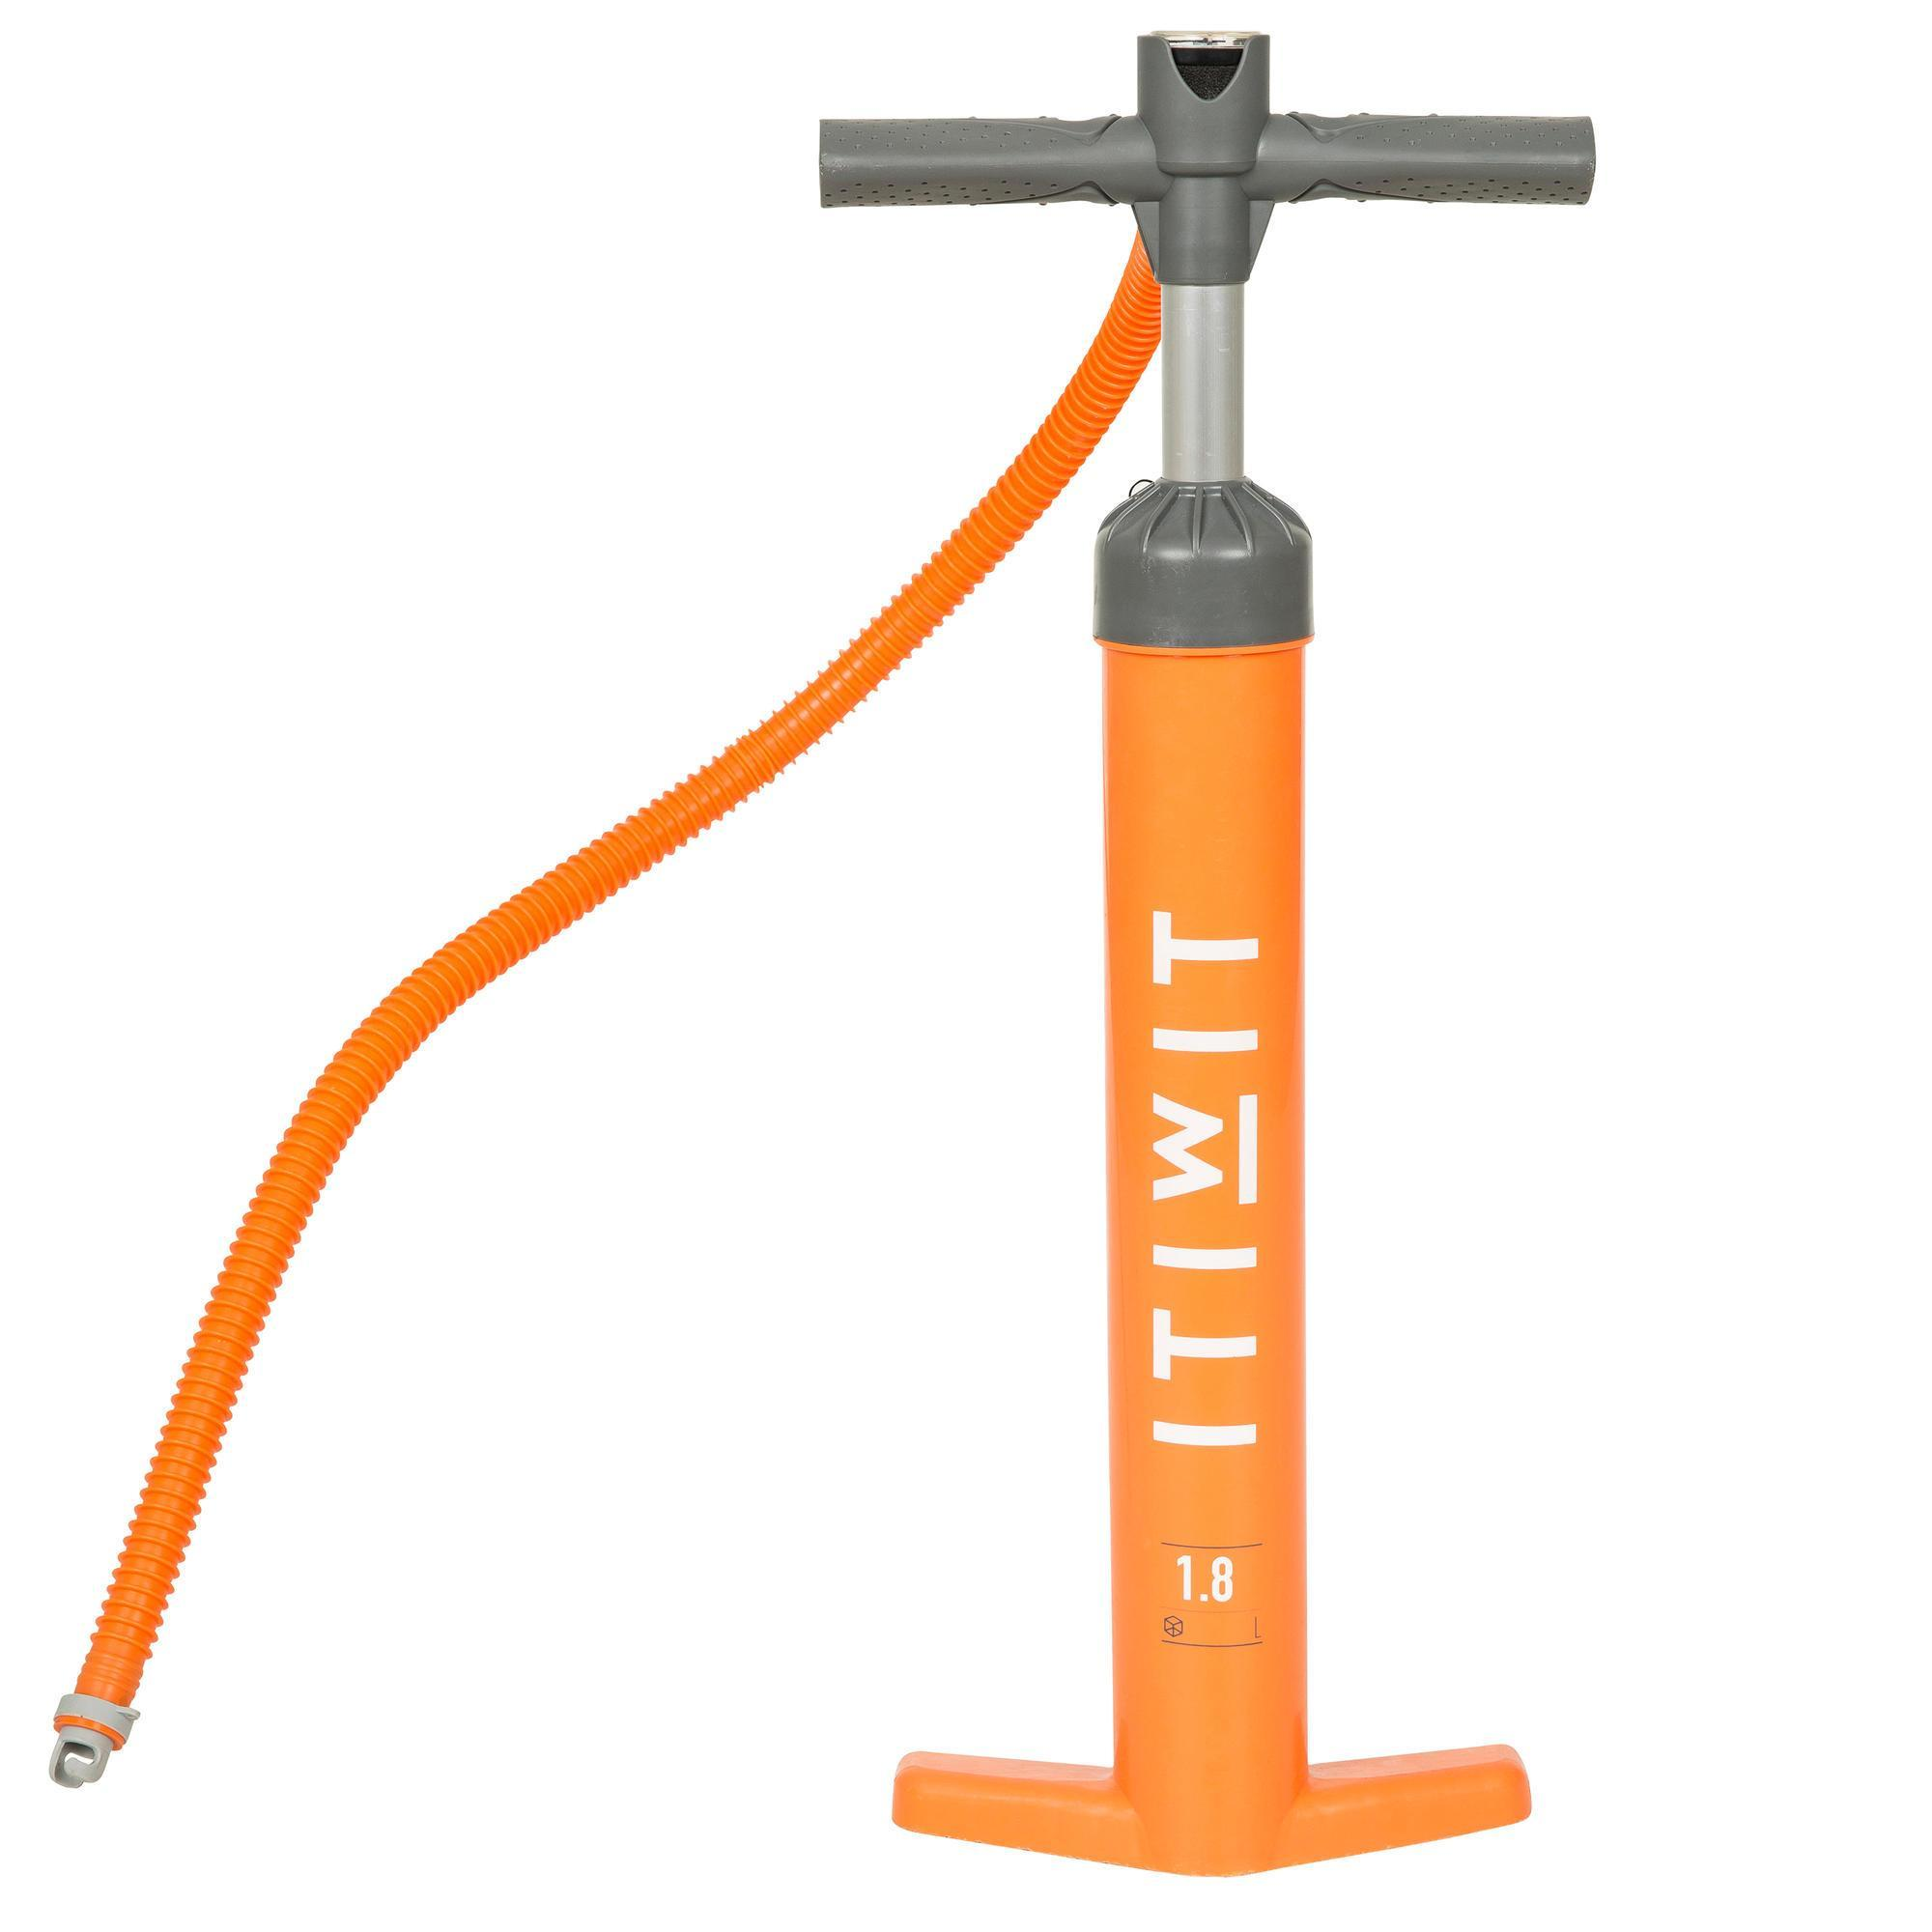 Itiwit Doppelhub Hochdruckpumpe - Stand Up Paddle - 20 PSI - orange